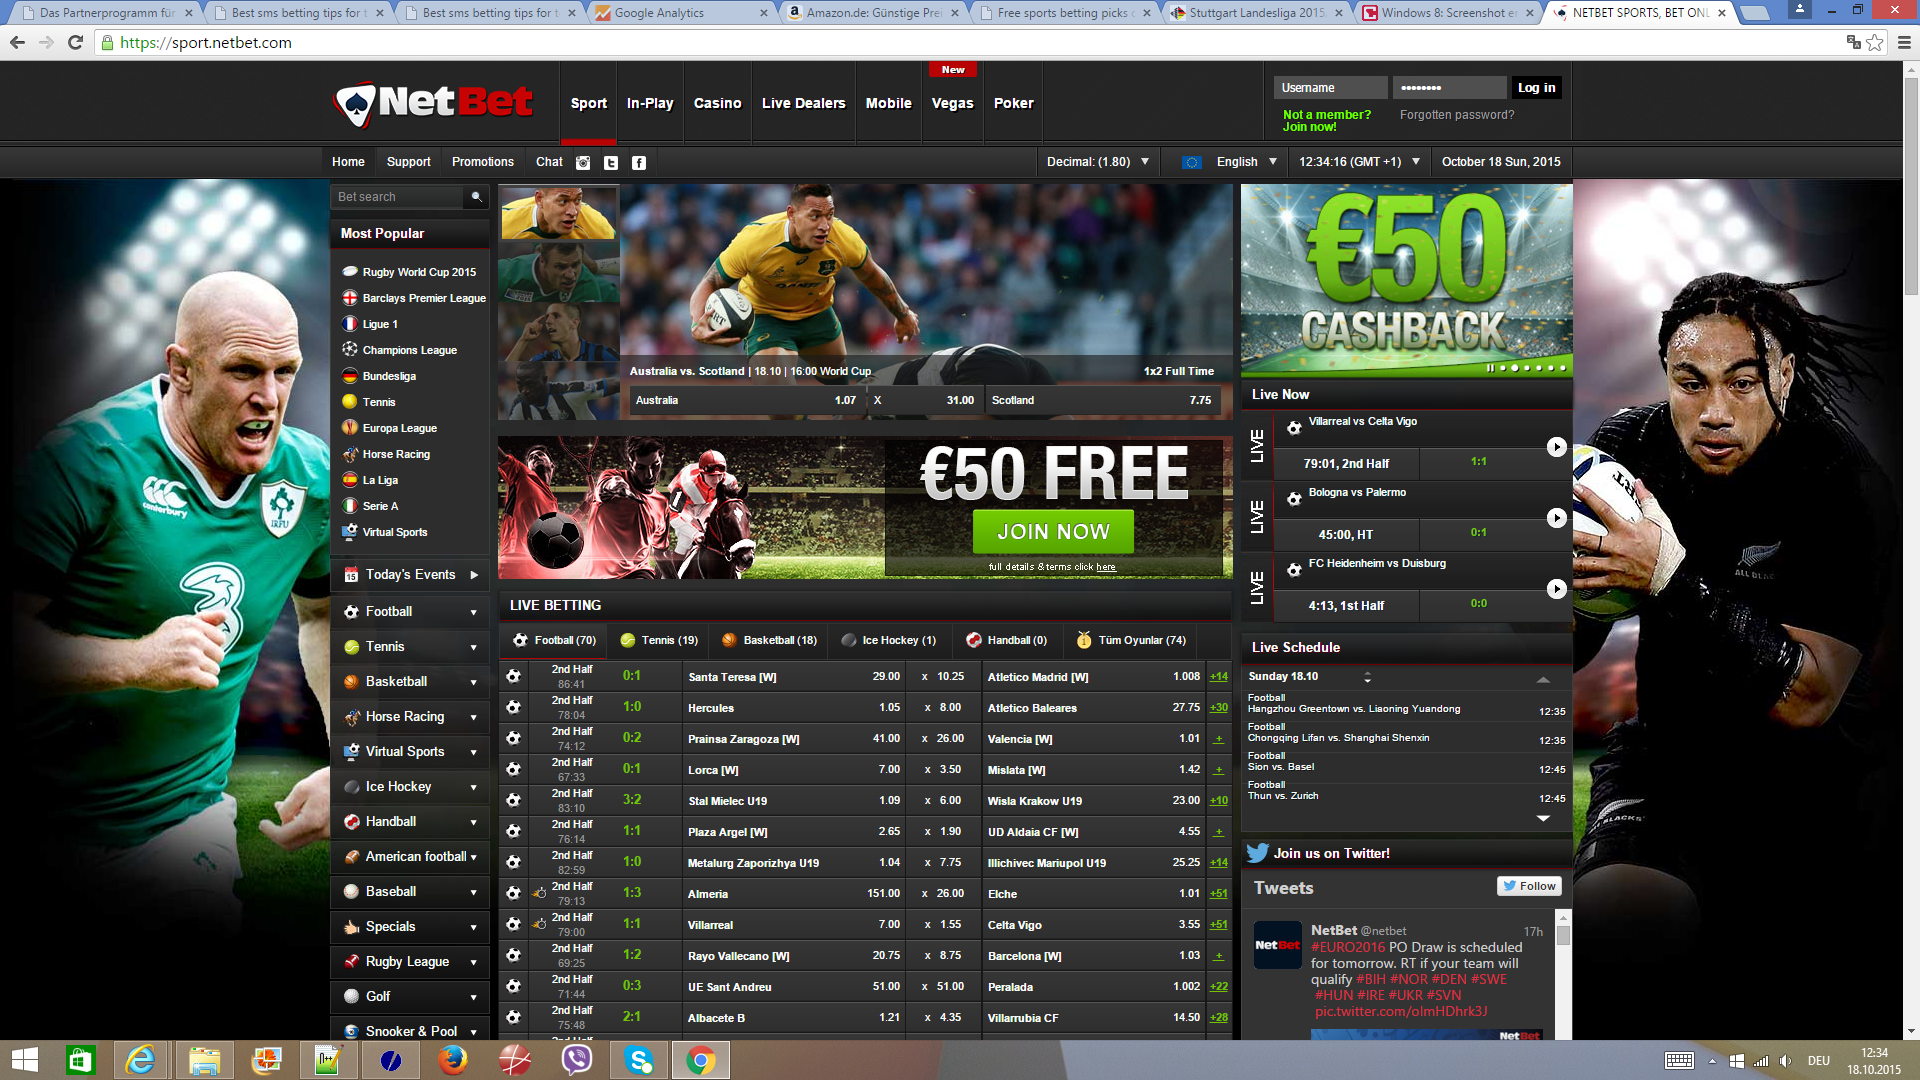 netbet transfer from casino to sports